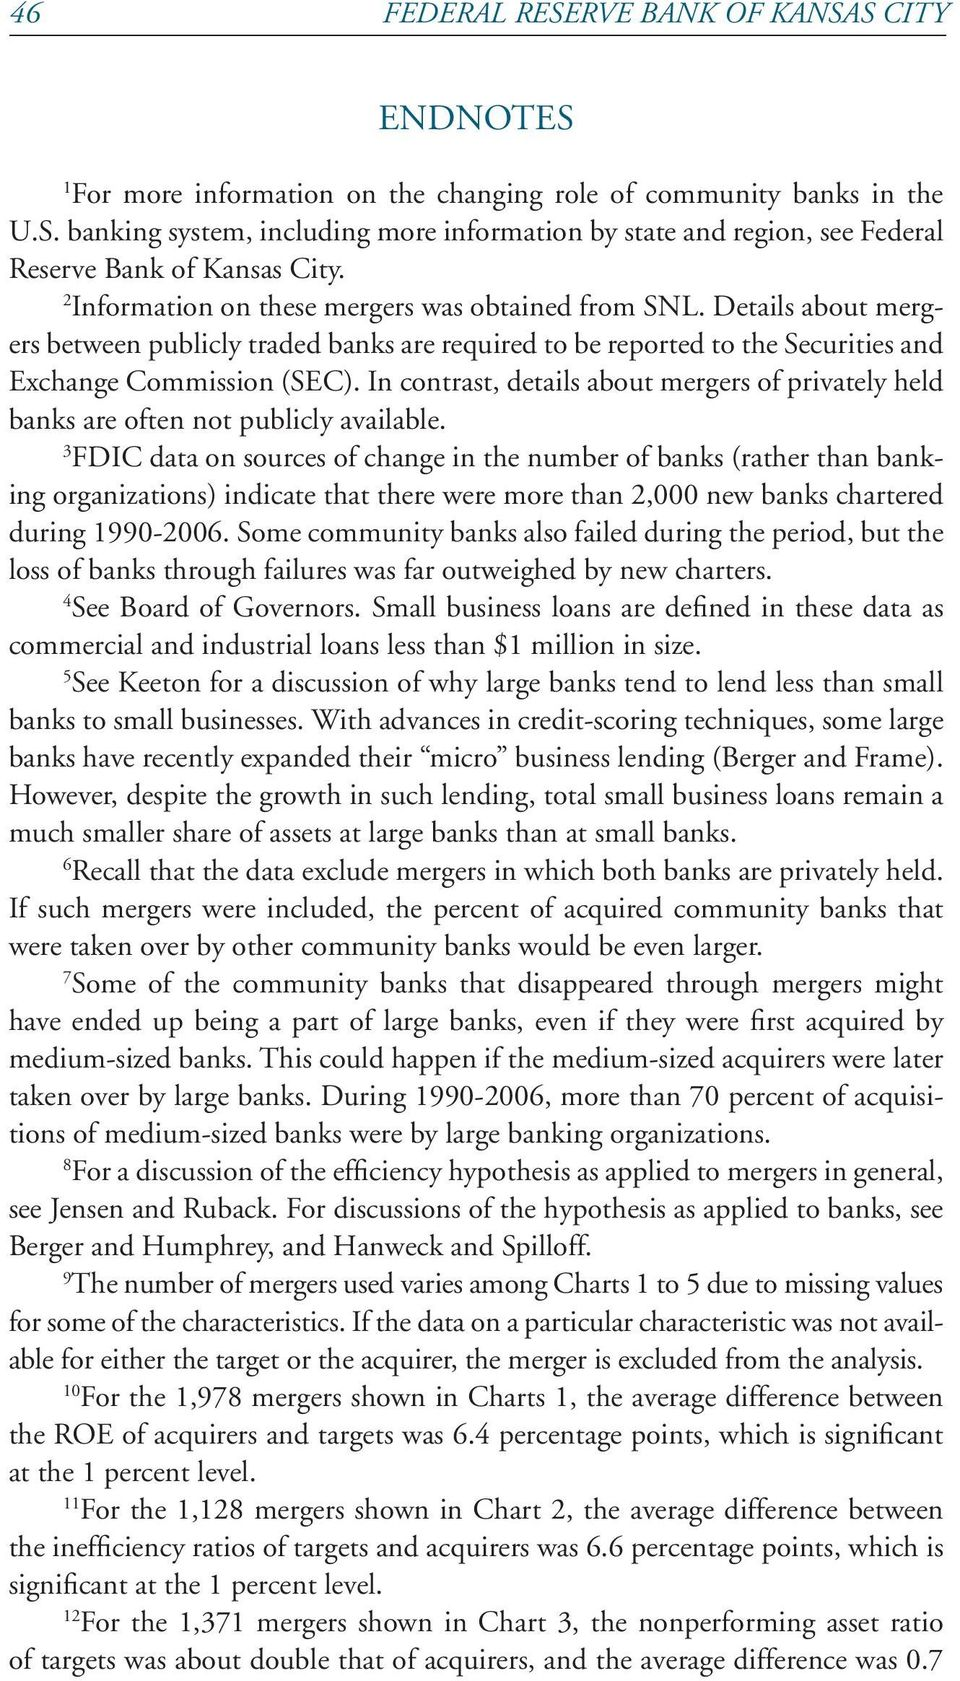 In contrast, details about mergers of privately held banks are often not publicly available.